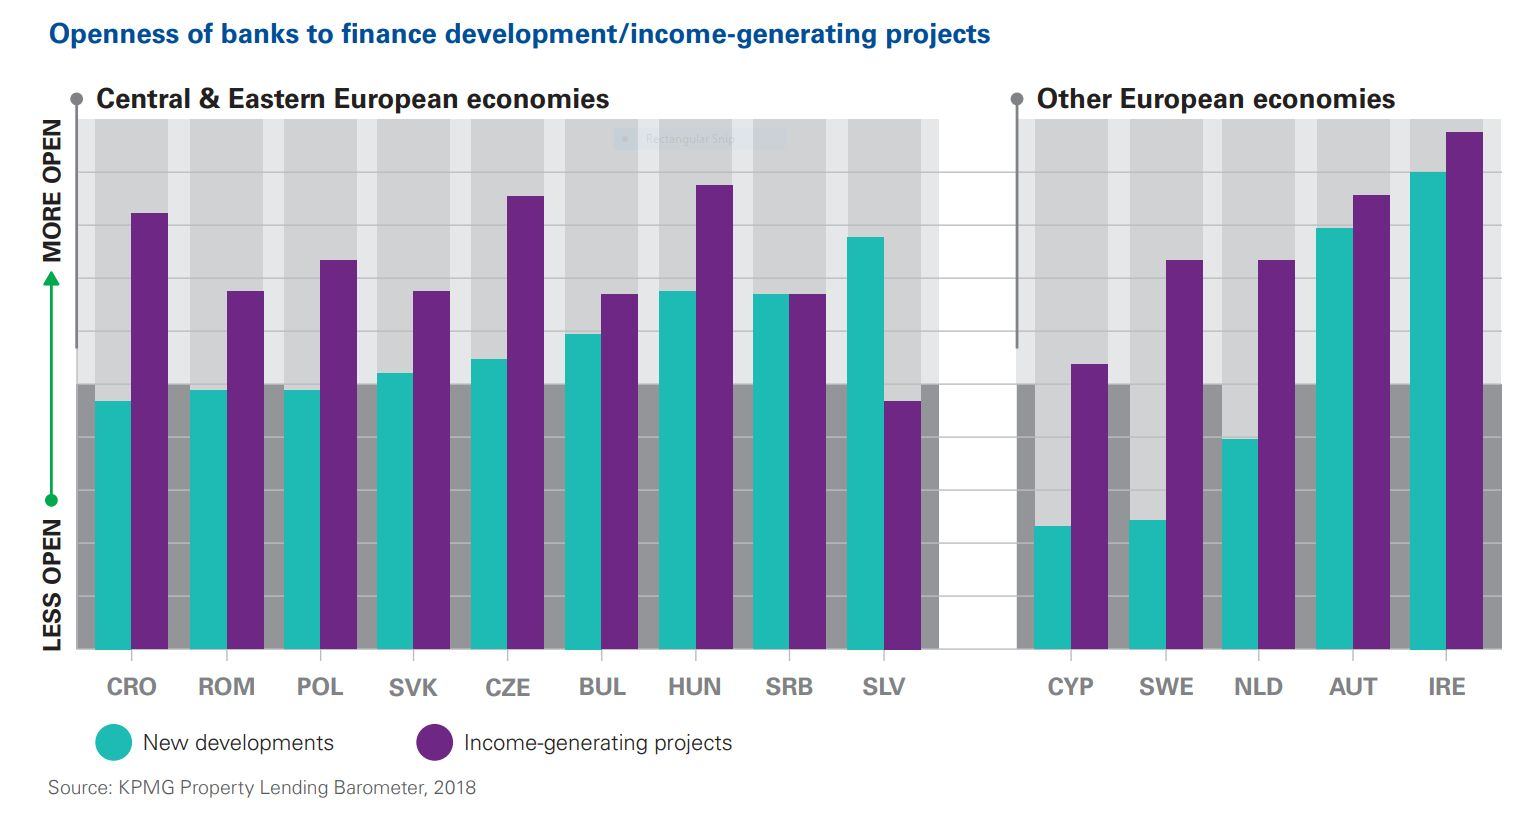 Openness of banks to finance development/income-generating projects